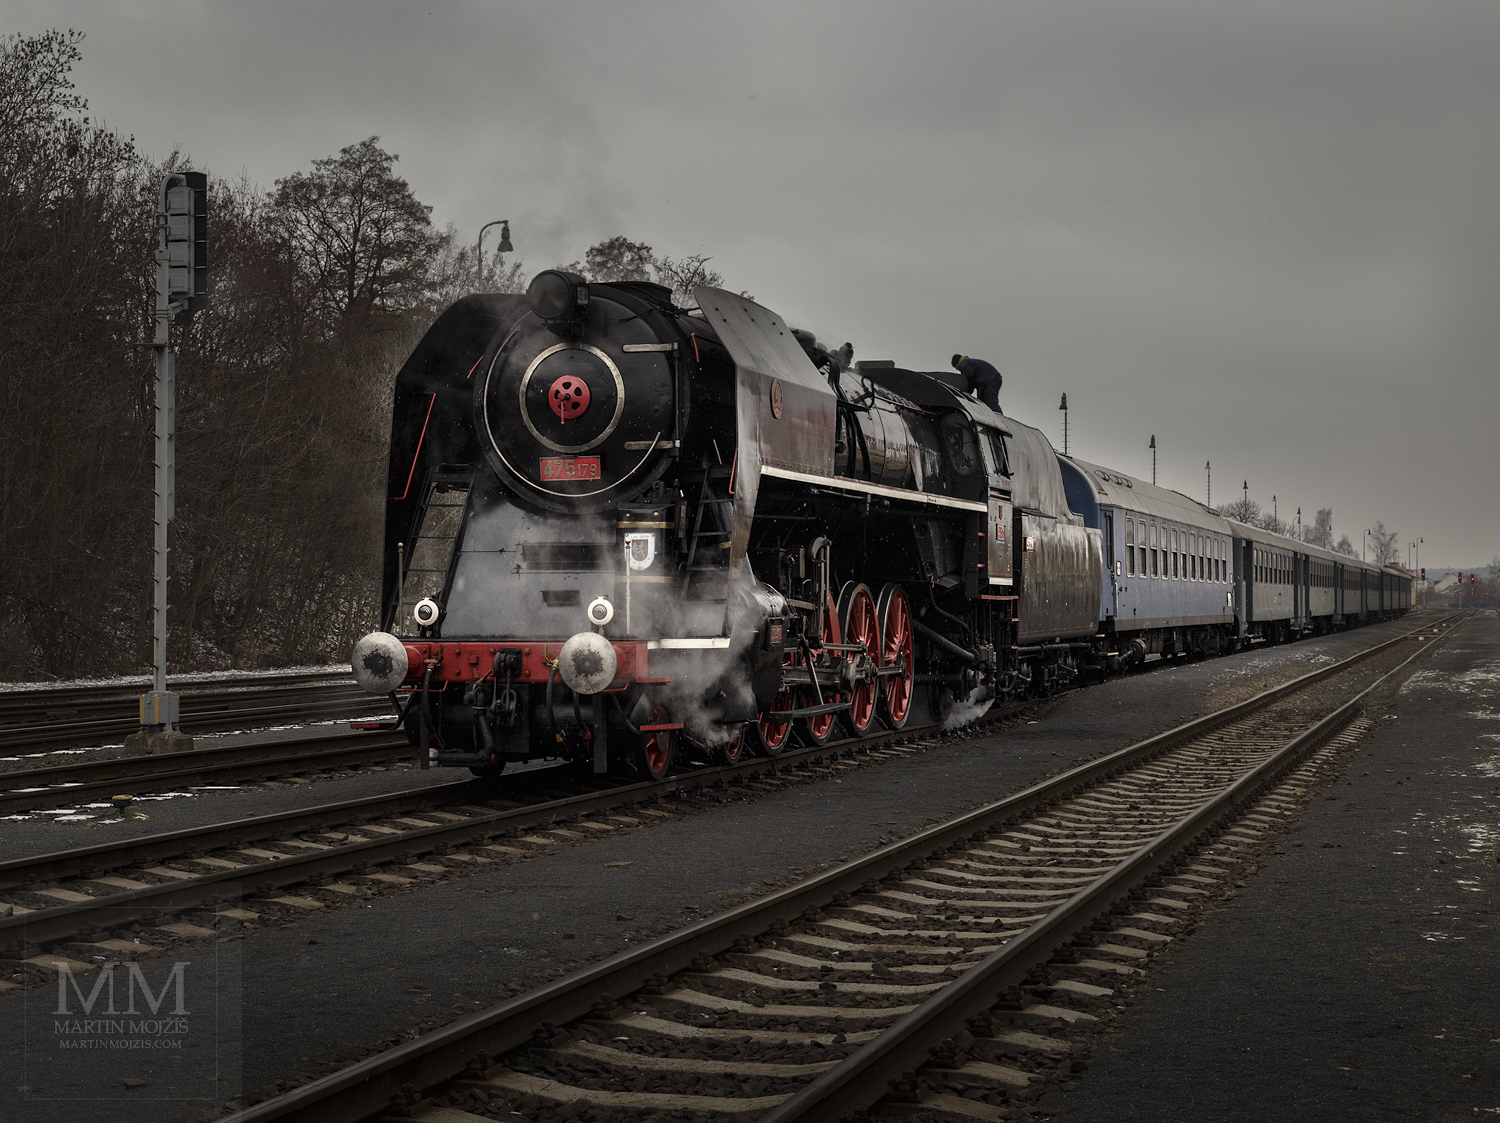 Large format, fine art photograph of steam locomotive Noblewoman in head of historic passenger train. Martin Mojzis.